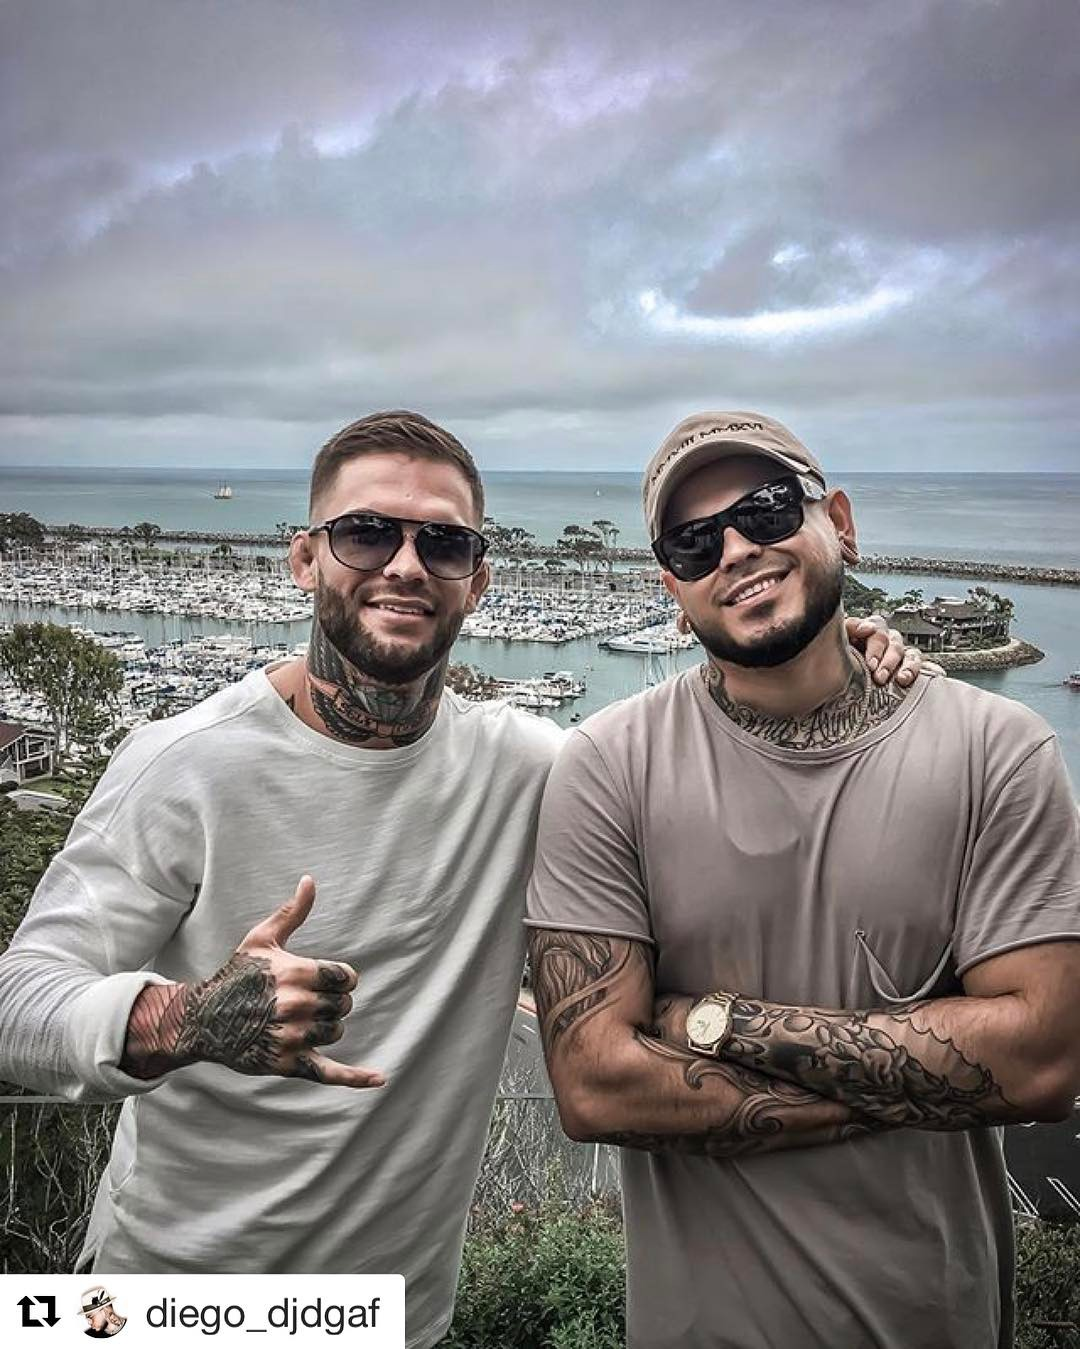 Cody Garbrandt Instagram username